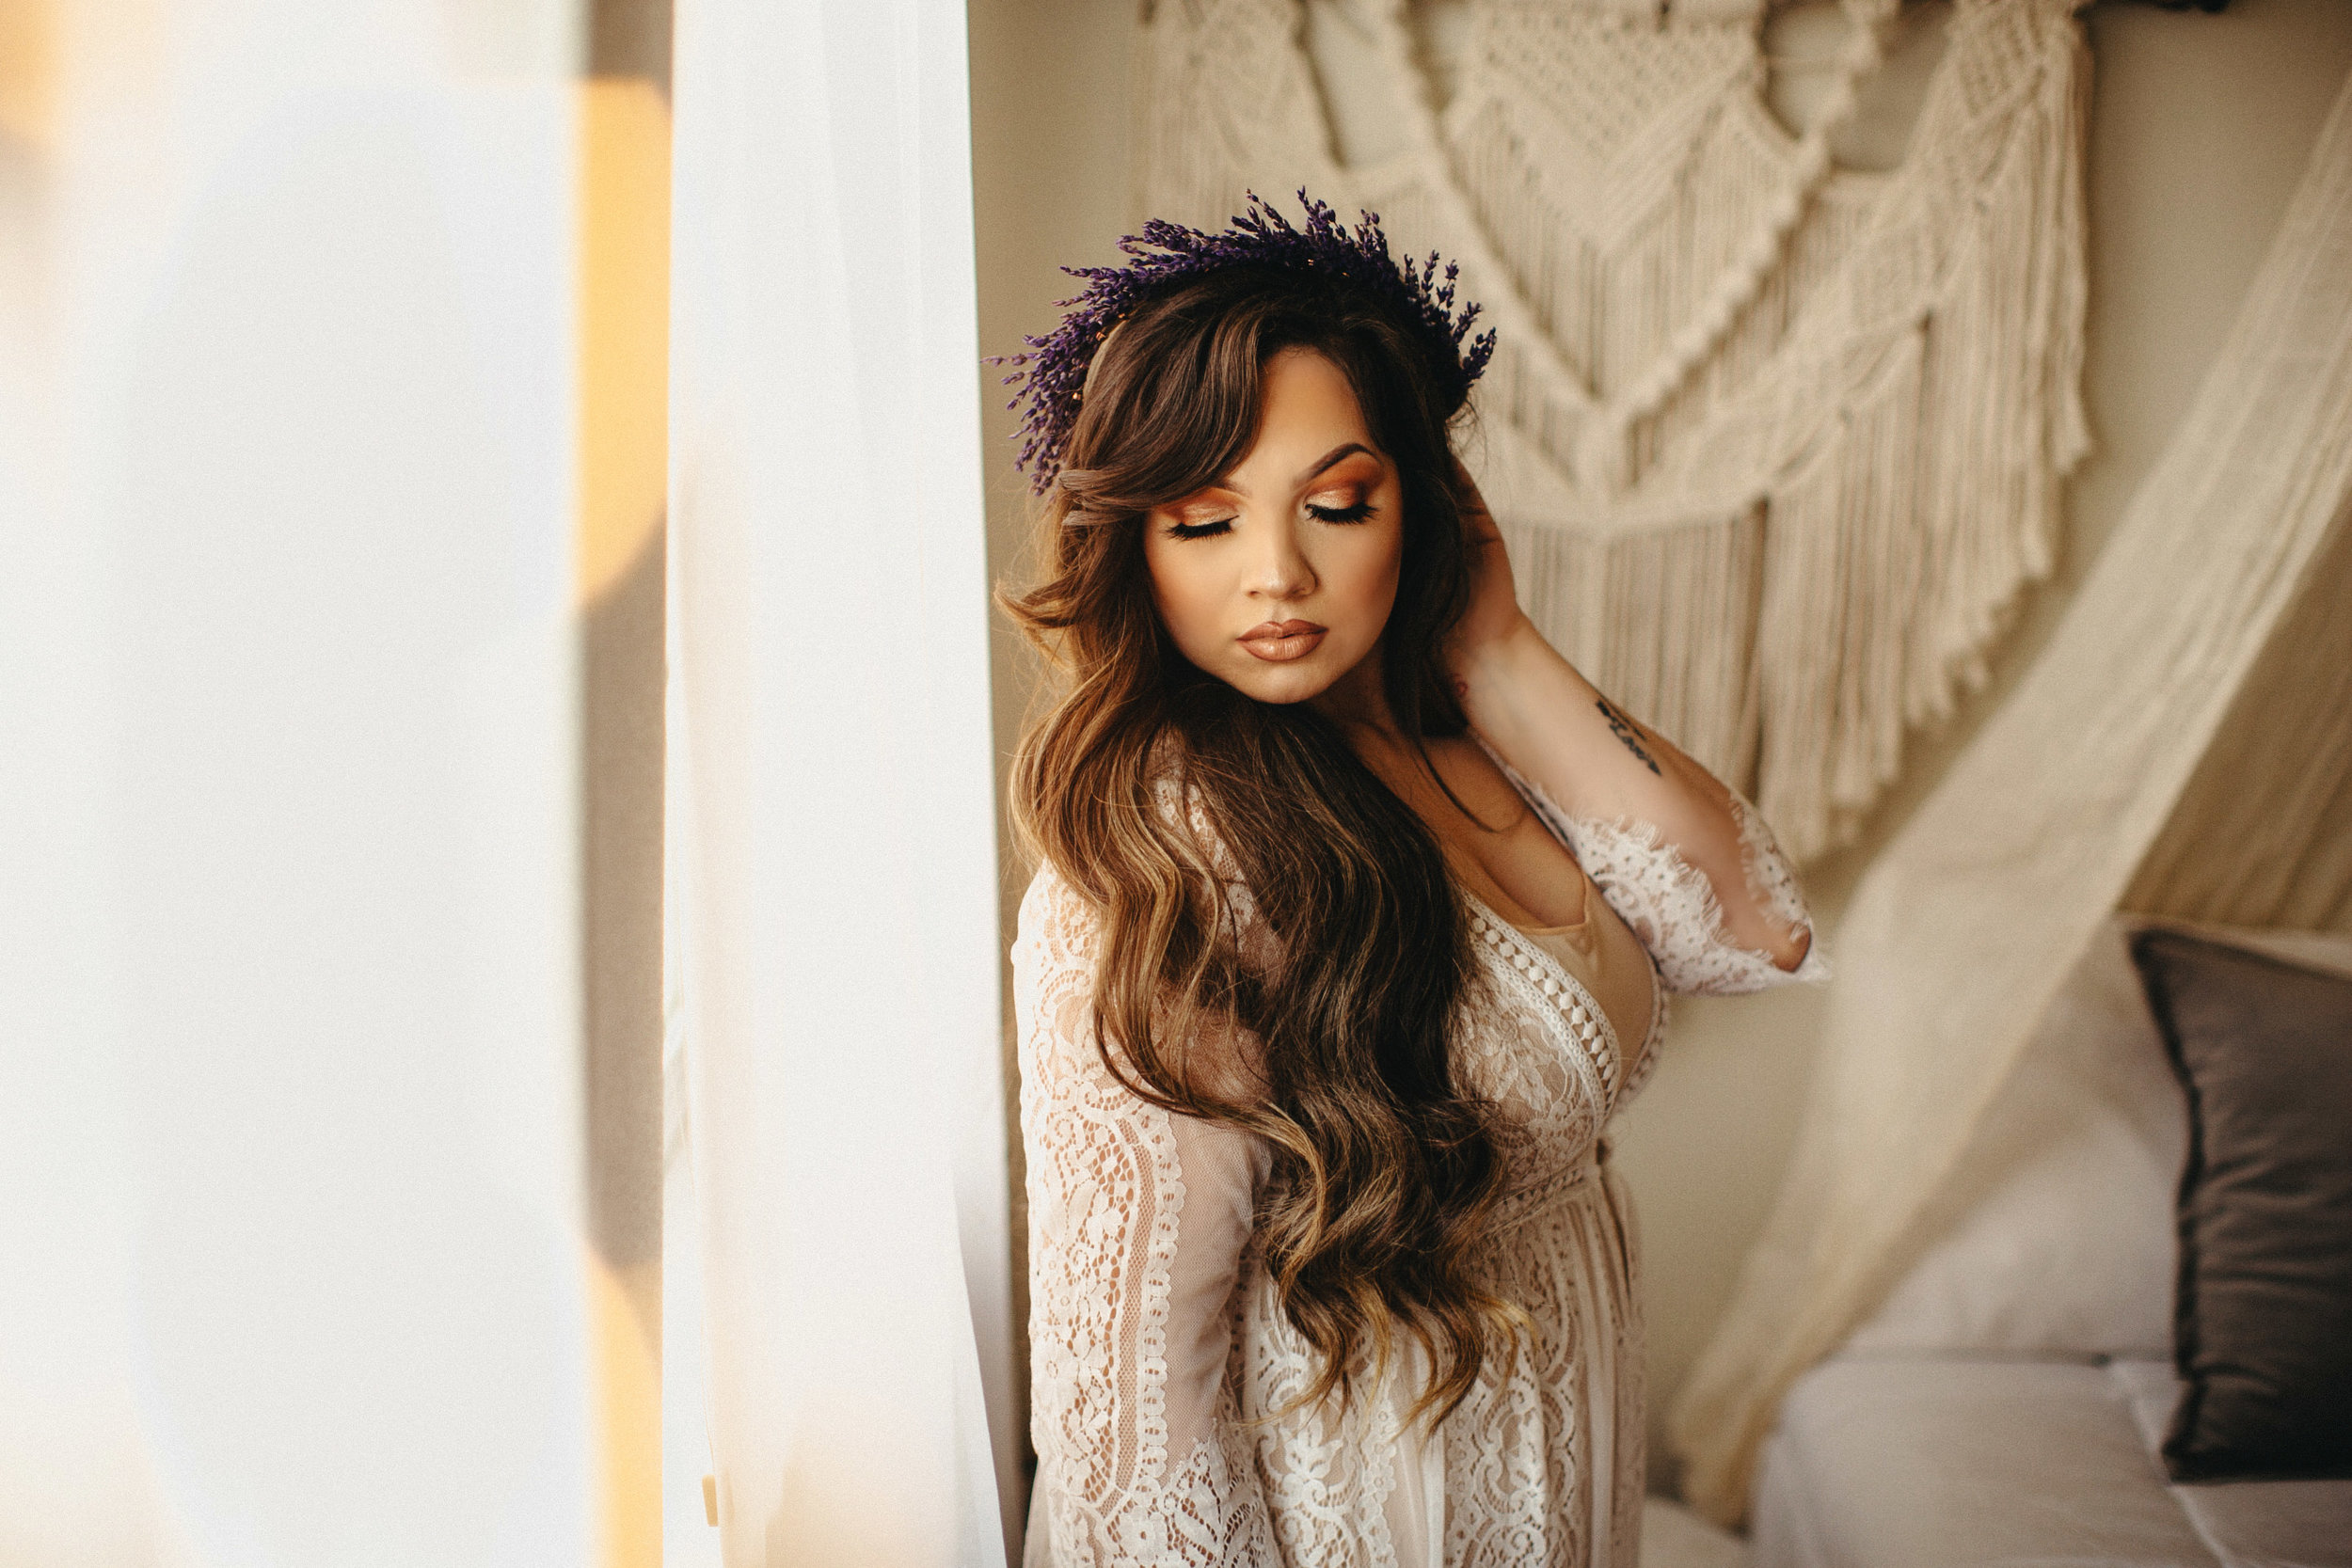 Liz Osban Photography Boudoir Sweetheart Sessions Session Tavae Hurtado pinup Cheyenne Wyoming Ft Collins Colorado Self Love Flower Crown Wedding Elope Eloping Elopement Engaged Gift8.jpg